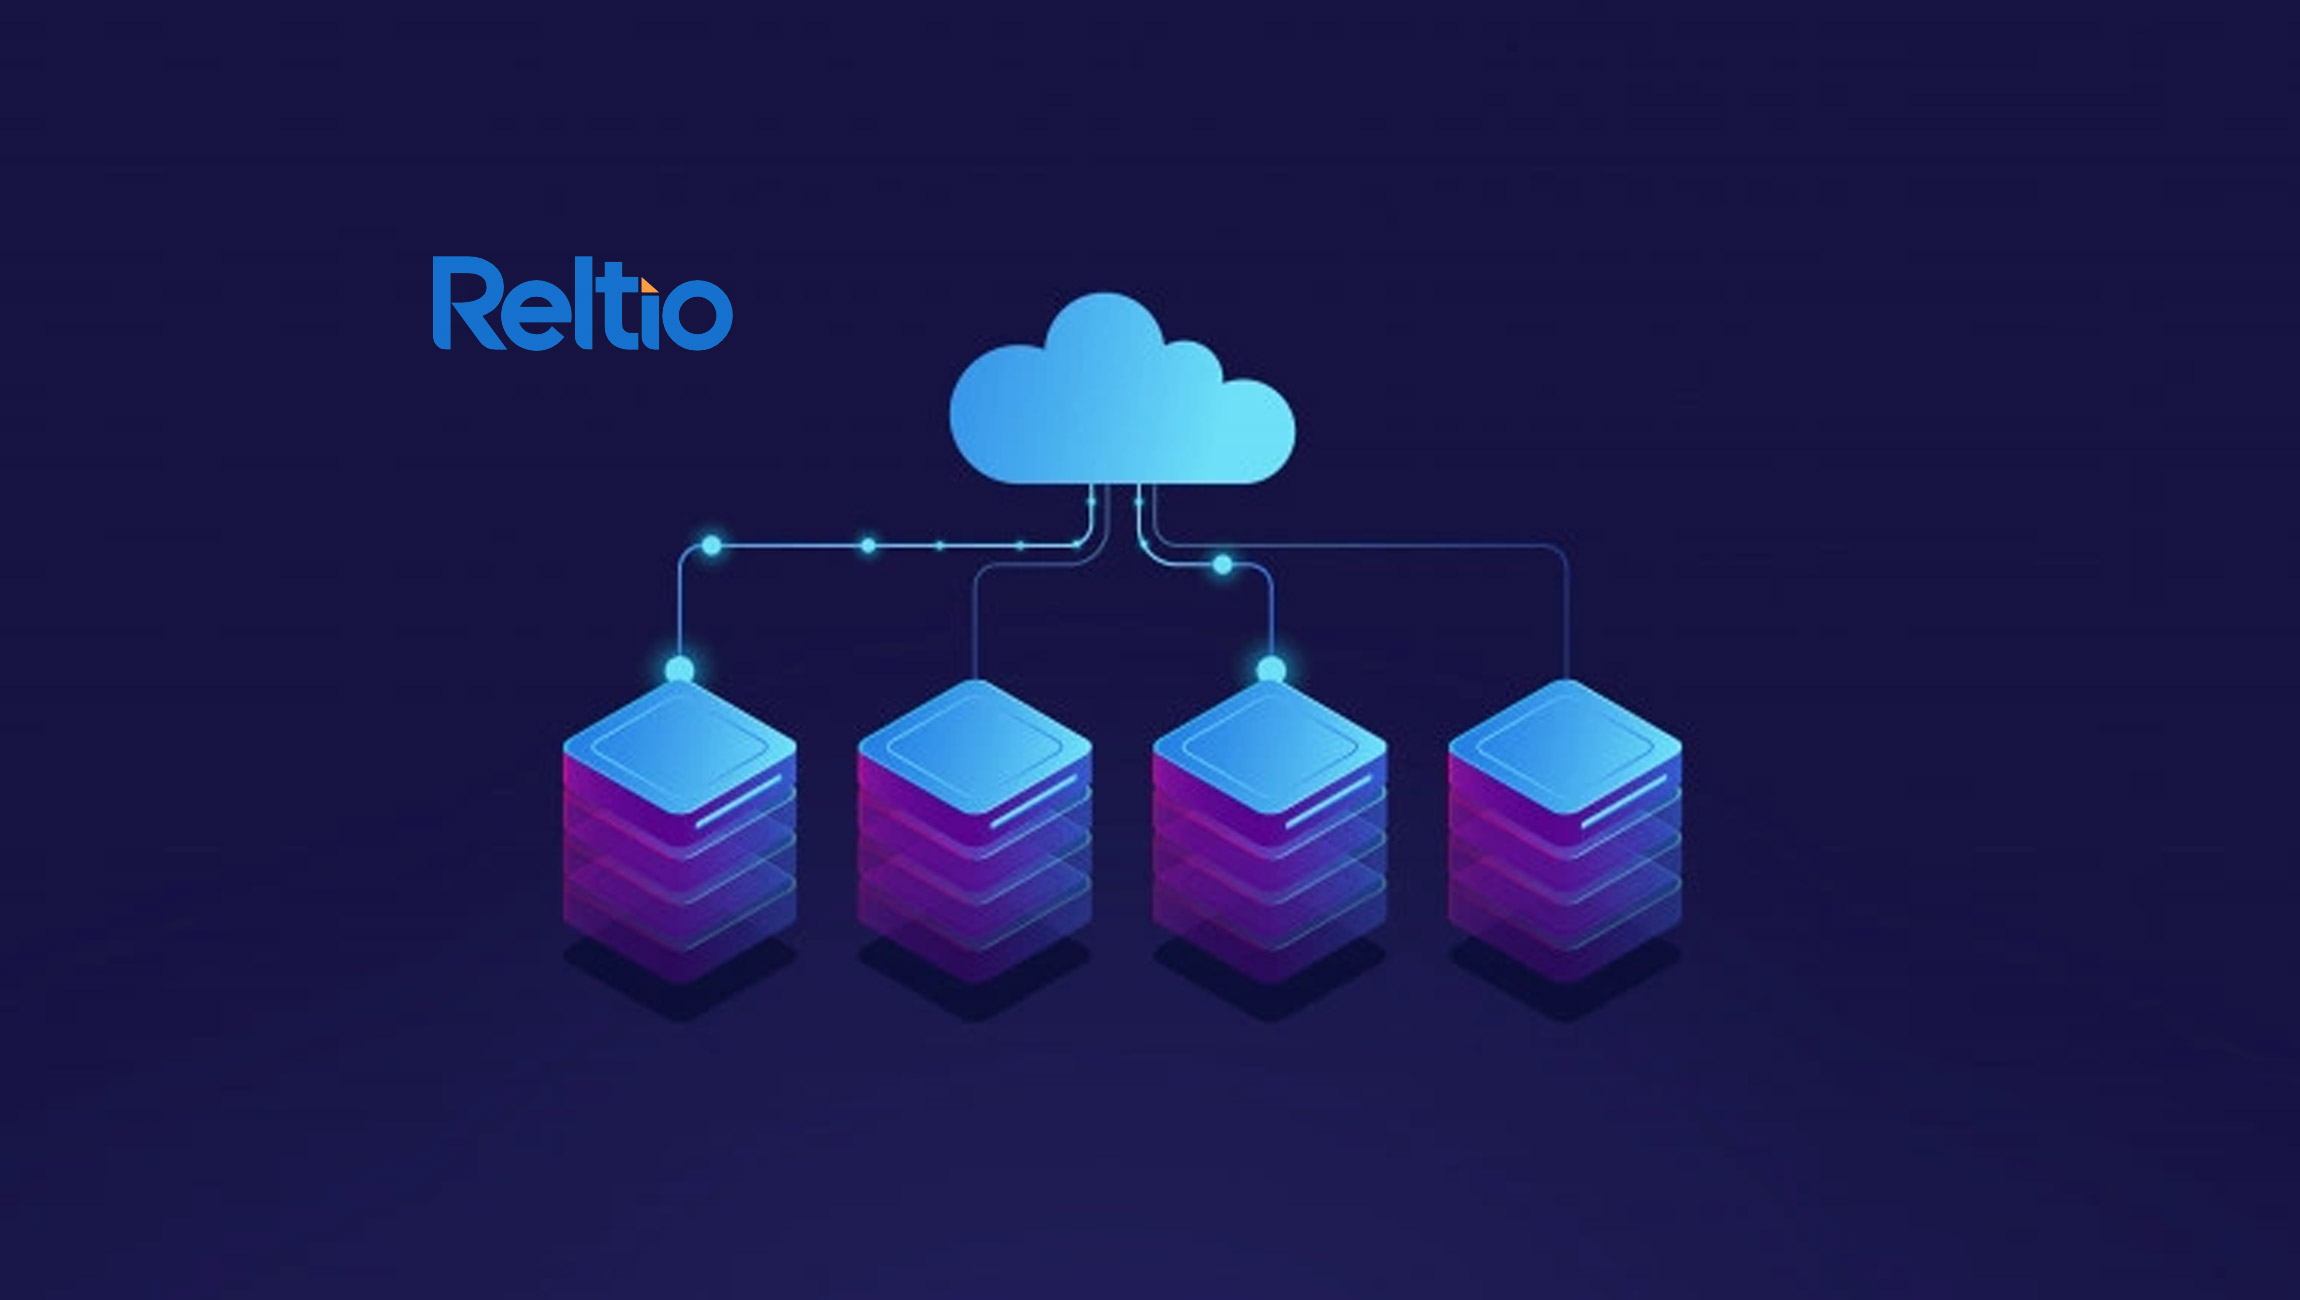 Reltio Introduces Identity 360, an Industry-First Free Cloud Service for Mastering Customer Identities